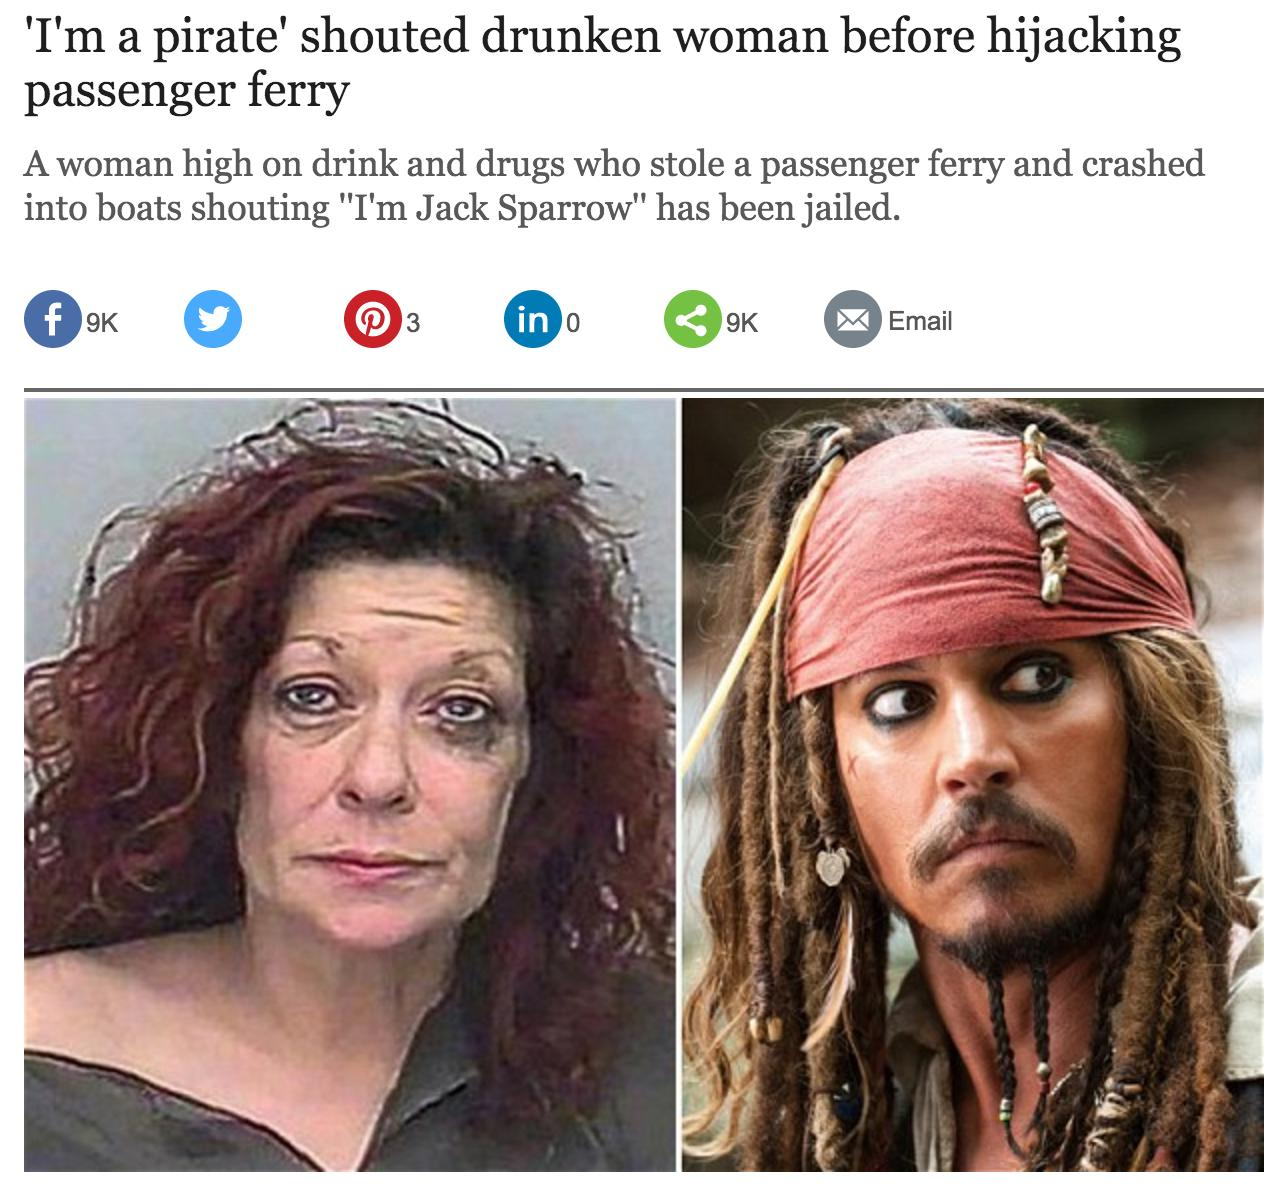 Drunk Woman Telegraph Article